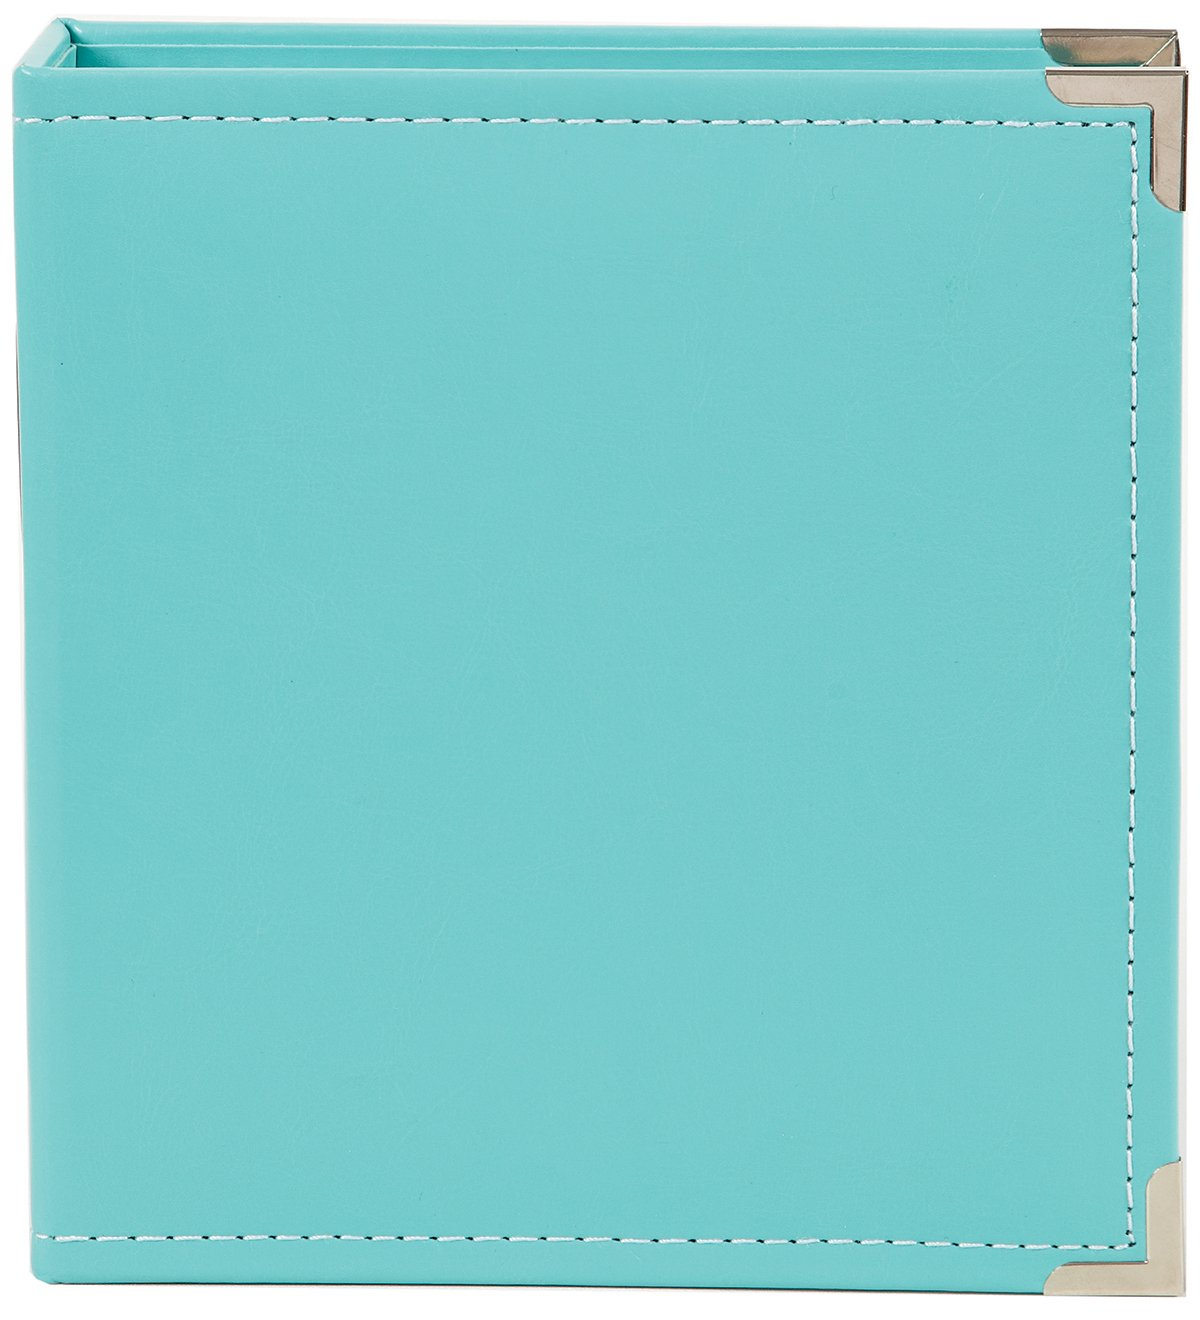 Simple Stories Faux Leather Binder, 6 by 8-Inch, Teal